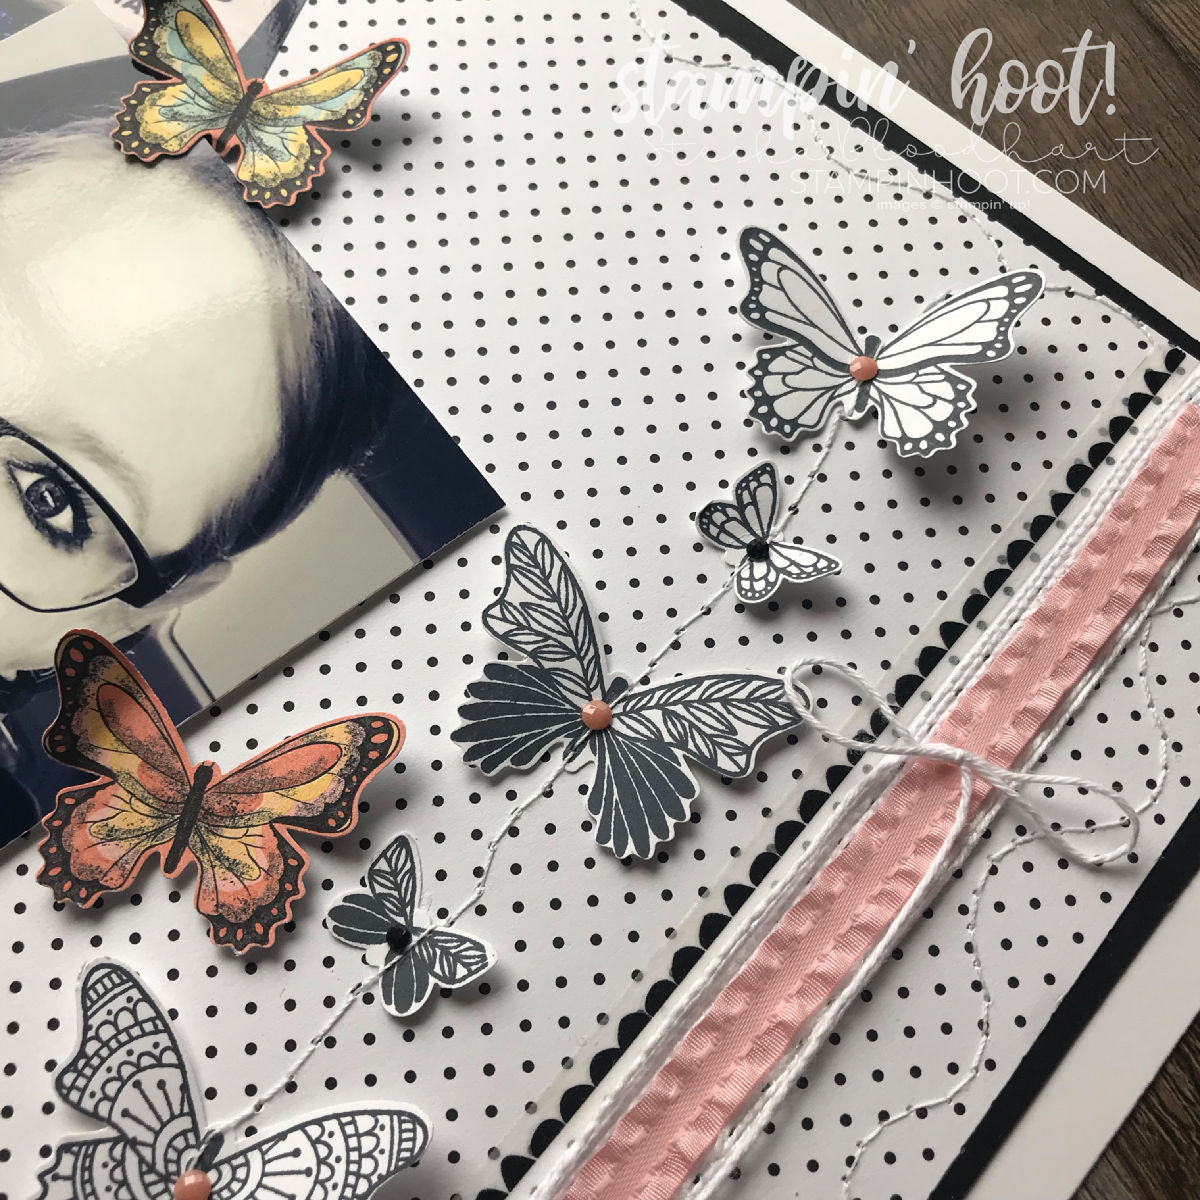 Scrapbooking Global Blog Hop - Layout by Design Team Member Stesha Bloodhart. Stampin' Hoot! #steshabloodhart #stampinhoot